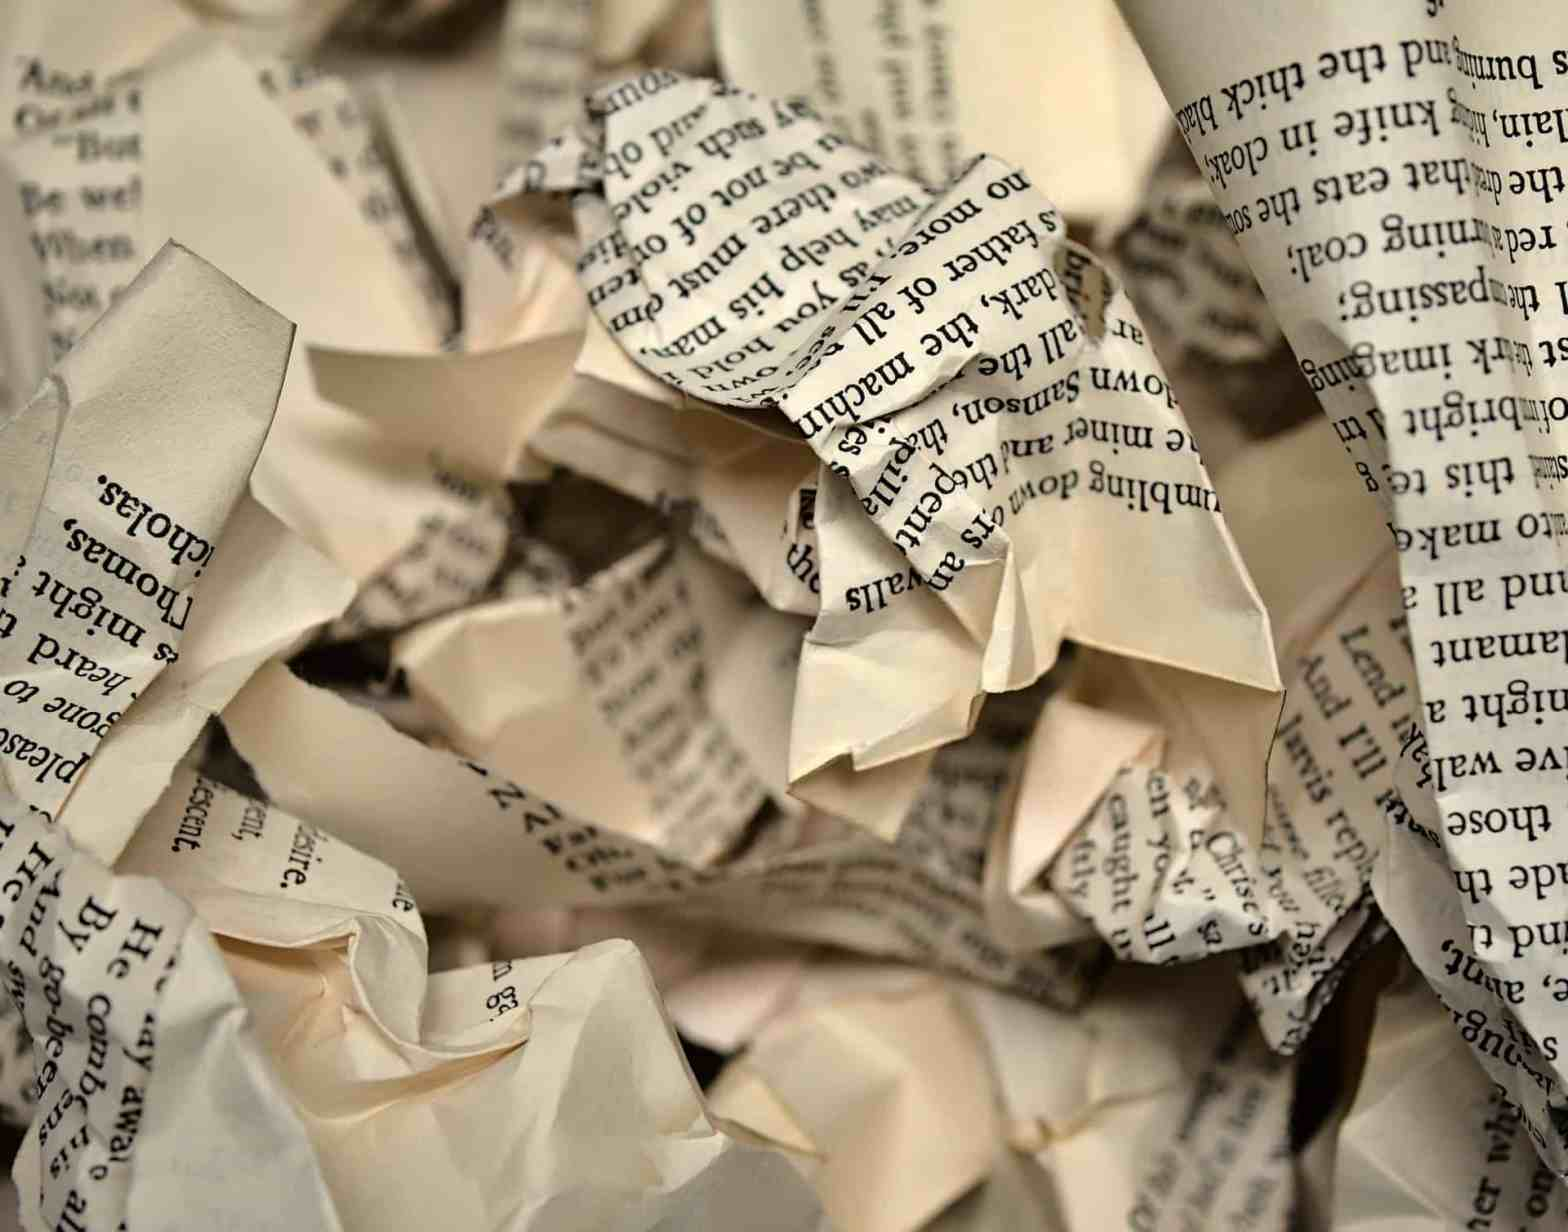 Dealing-with-constant-failure-after-ideas-on-scrunched-up-paper